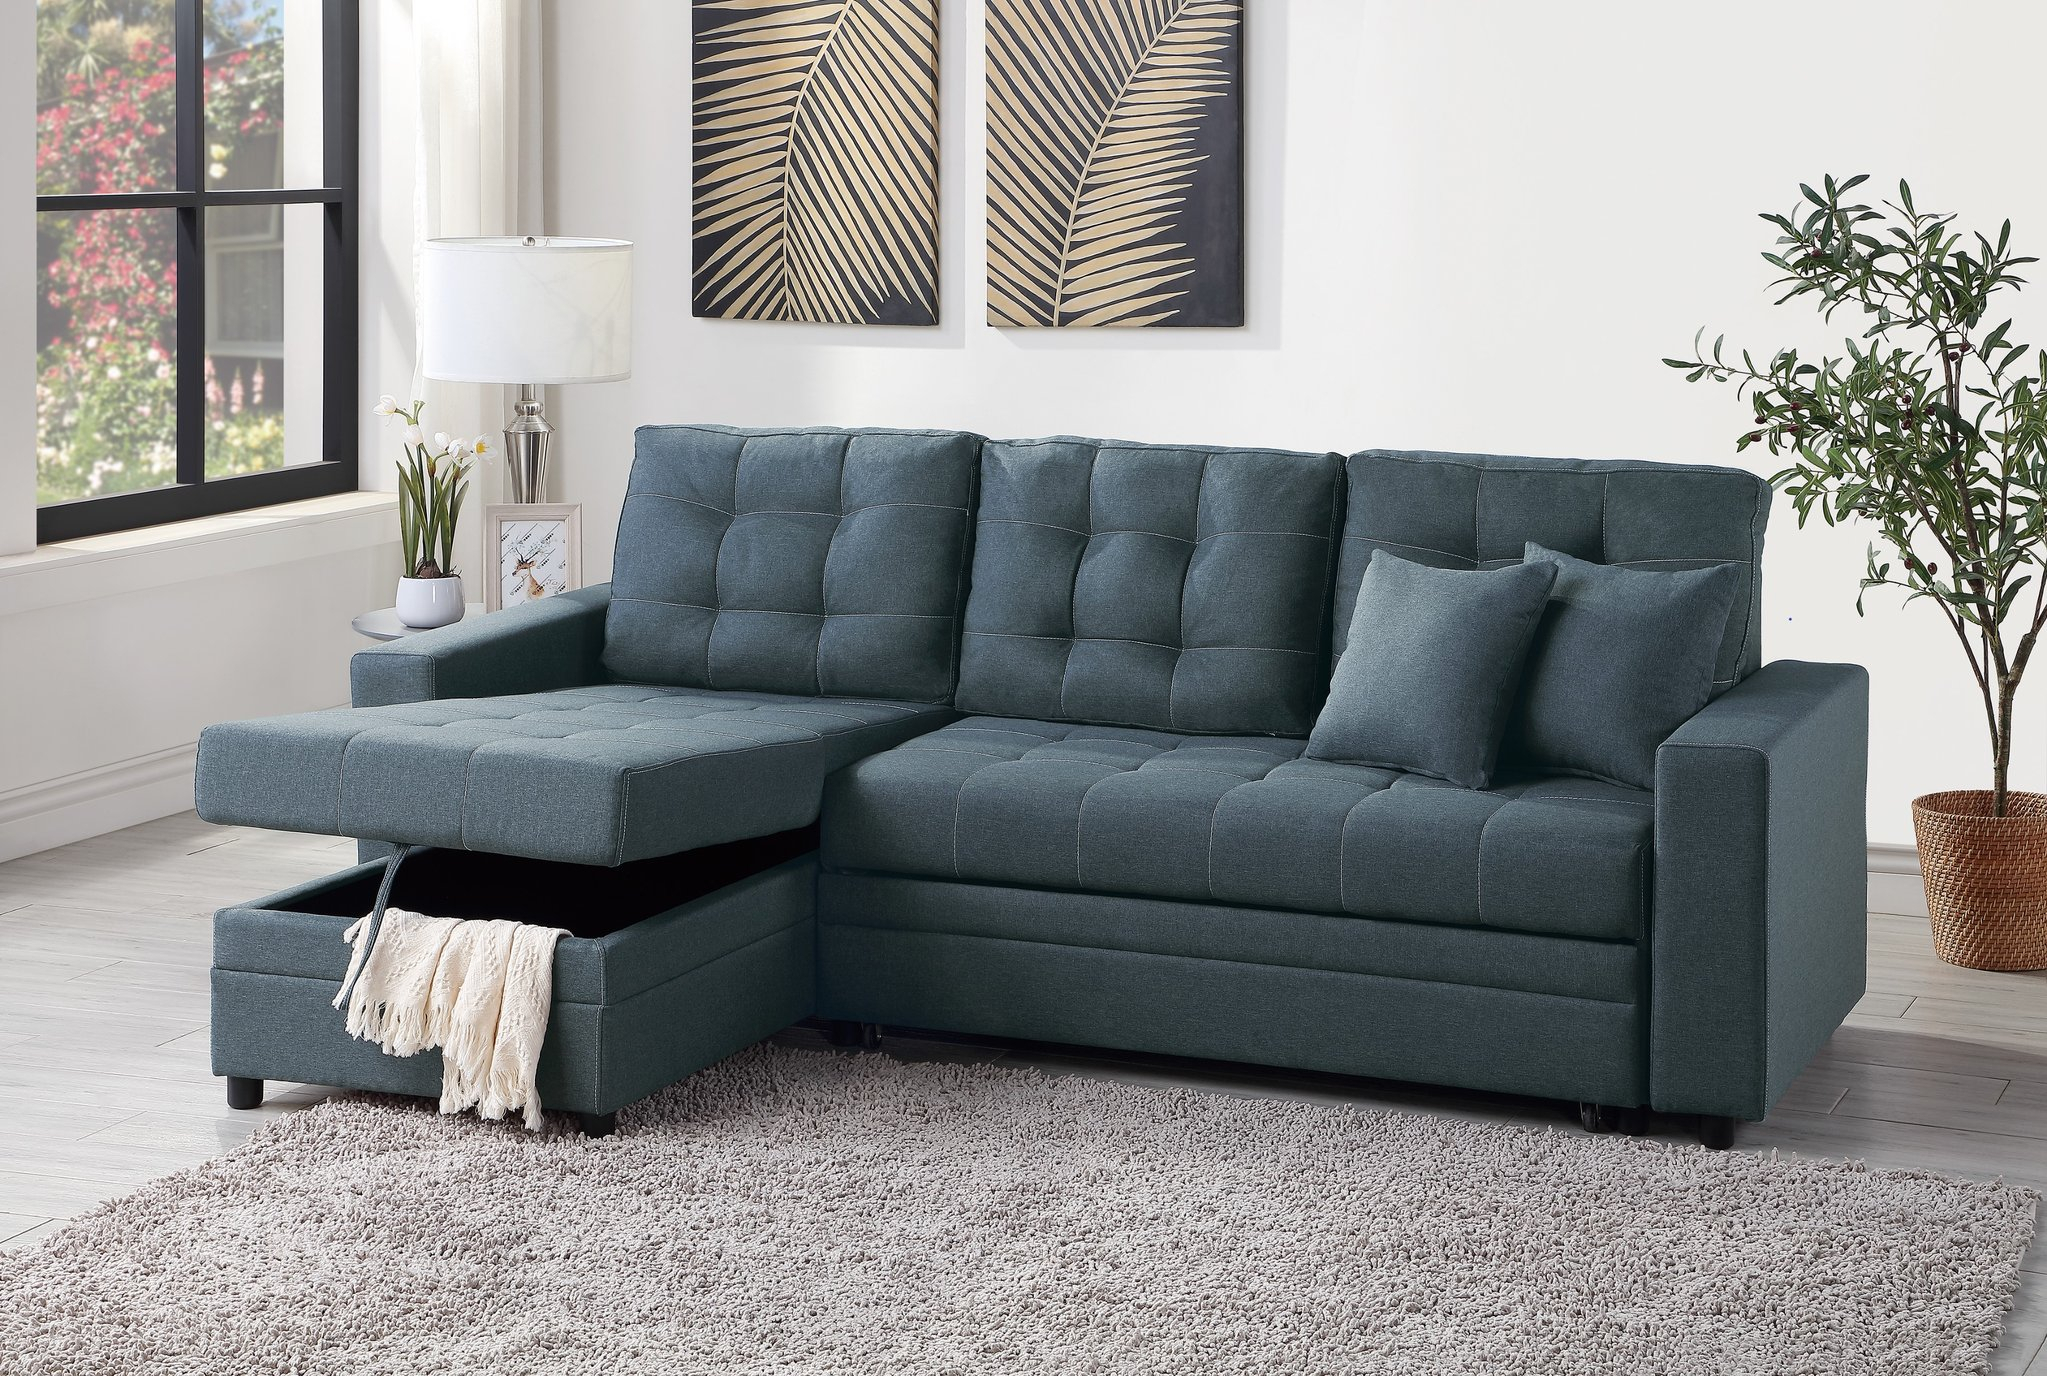 Blue Grey Convertible Pullout Bed Sofa Sectional + Storage Intended For Sectional Sofas With Storage (View 2 of 15)